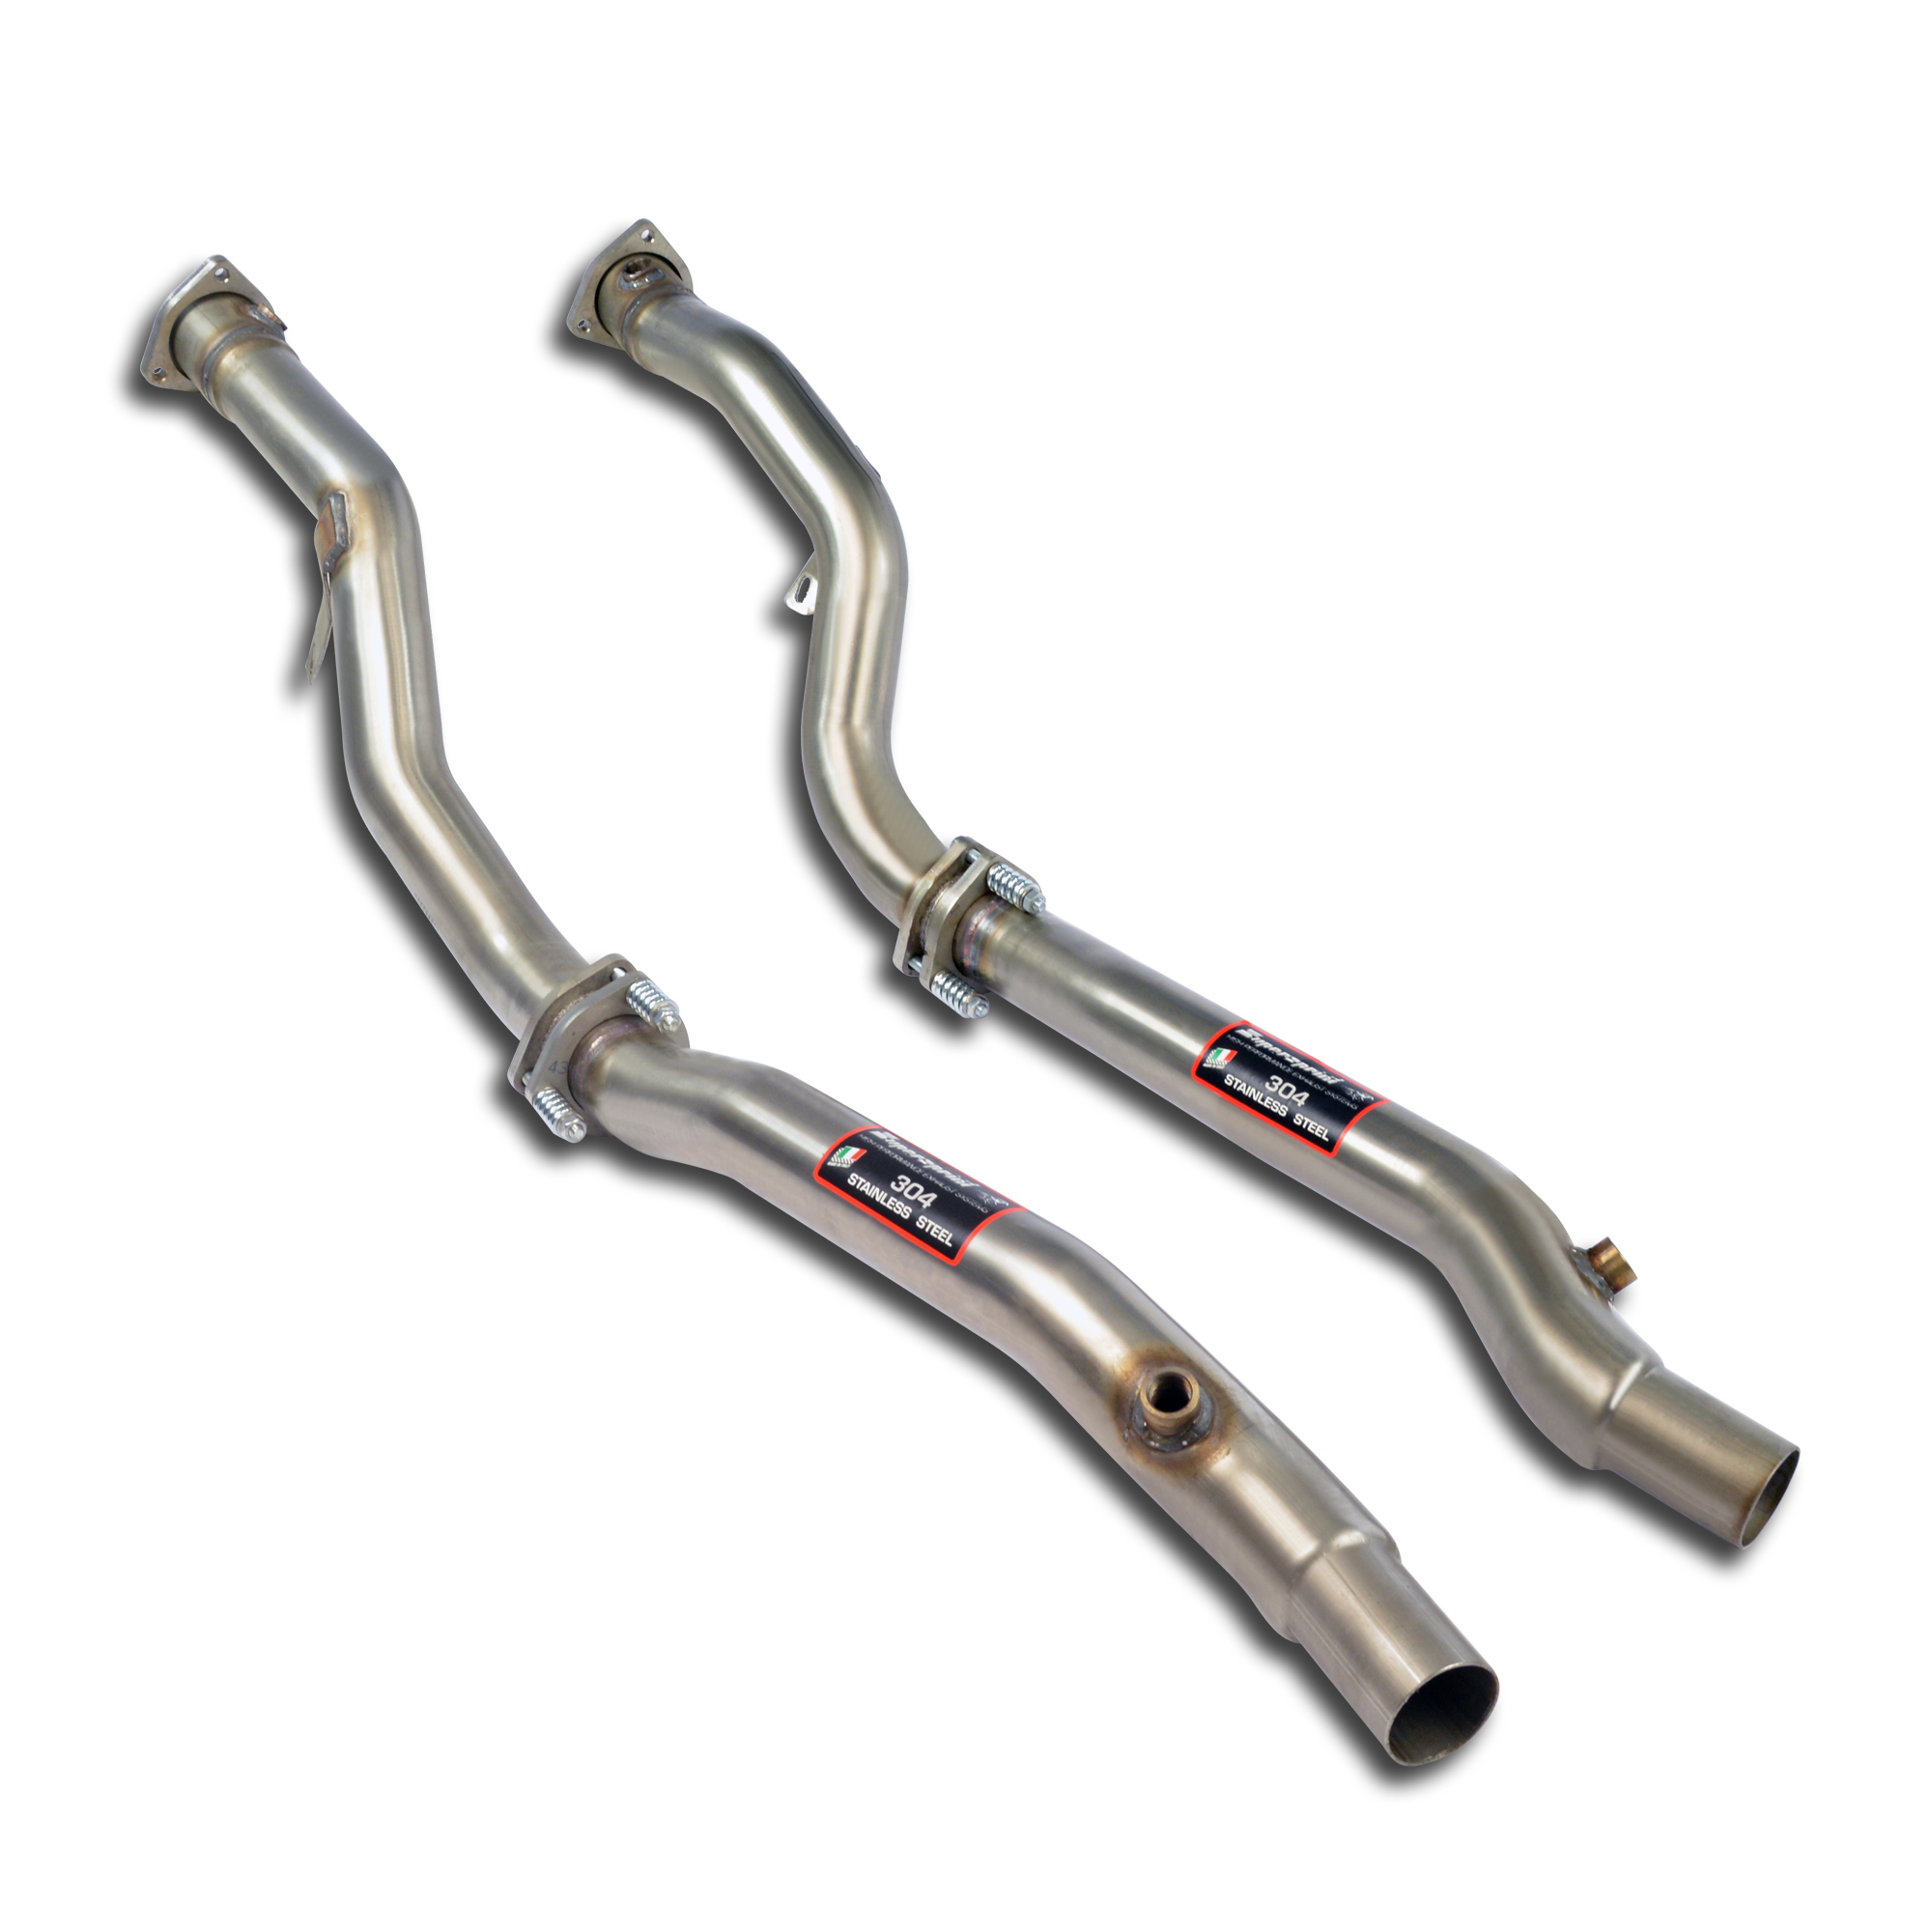 Audi  S / RS - AUDI A6 RS6 QUATTRO (Sedan + Avant) 4.2i V8 Turbo (450Hp) ' 02 ->' 04 Downpipe kit Right + Left<br>(Replaces catalytic converter), performance exhaust systems